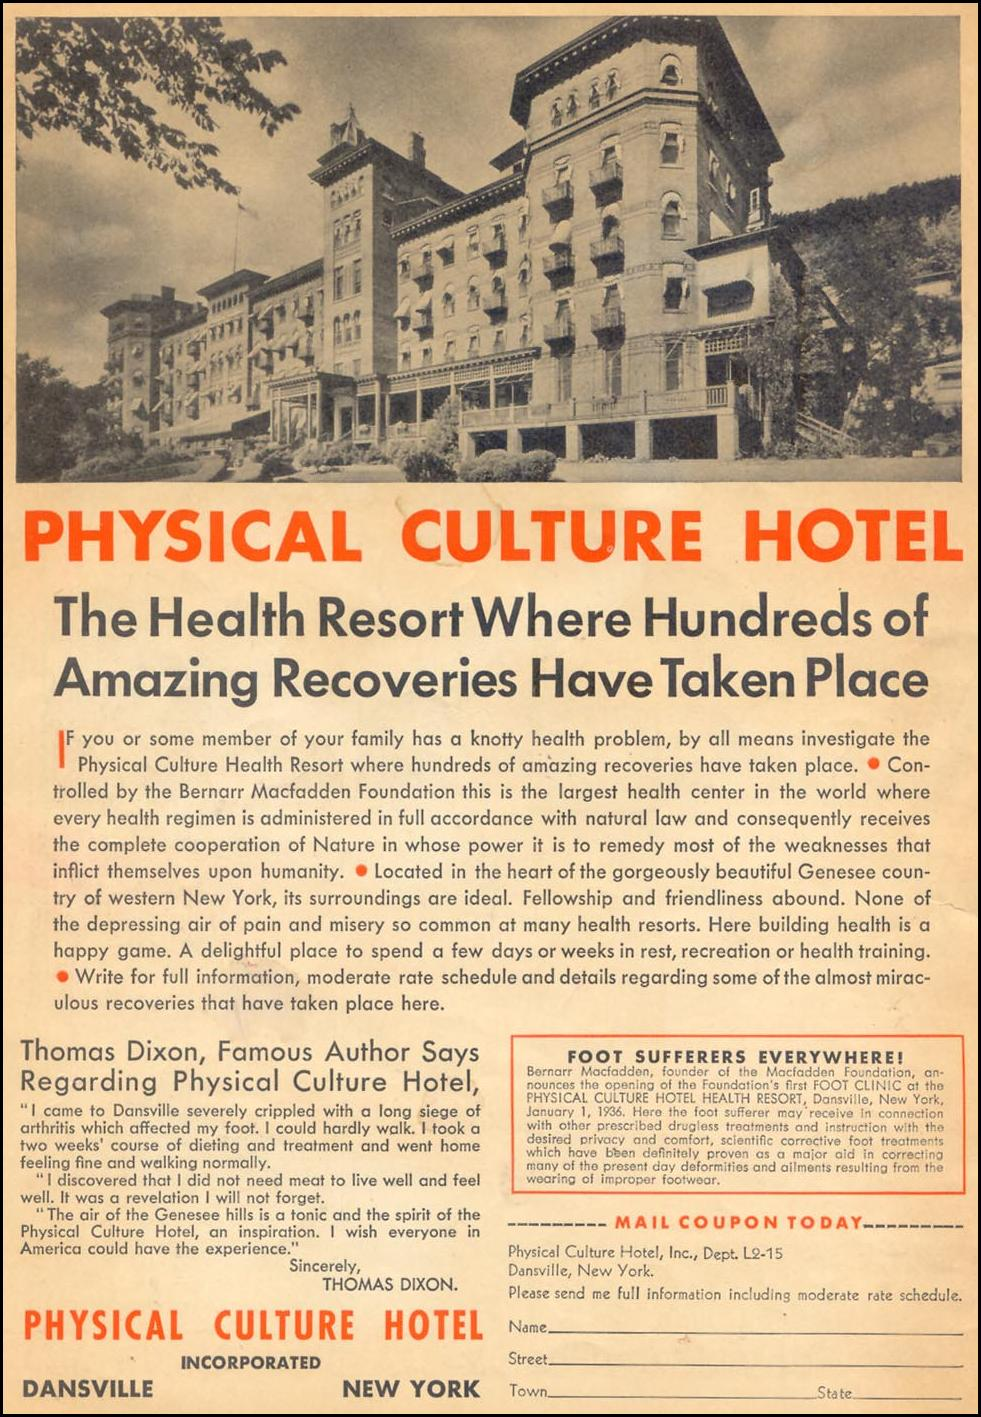 PHYSICAL CULTURE HOTEL LIBERTY 02/15/1936 INSIDE FRONT